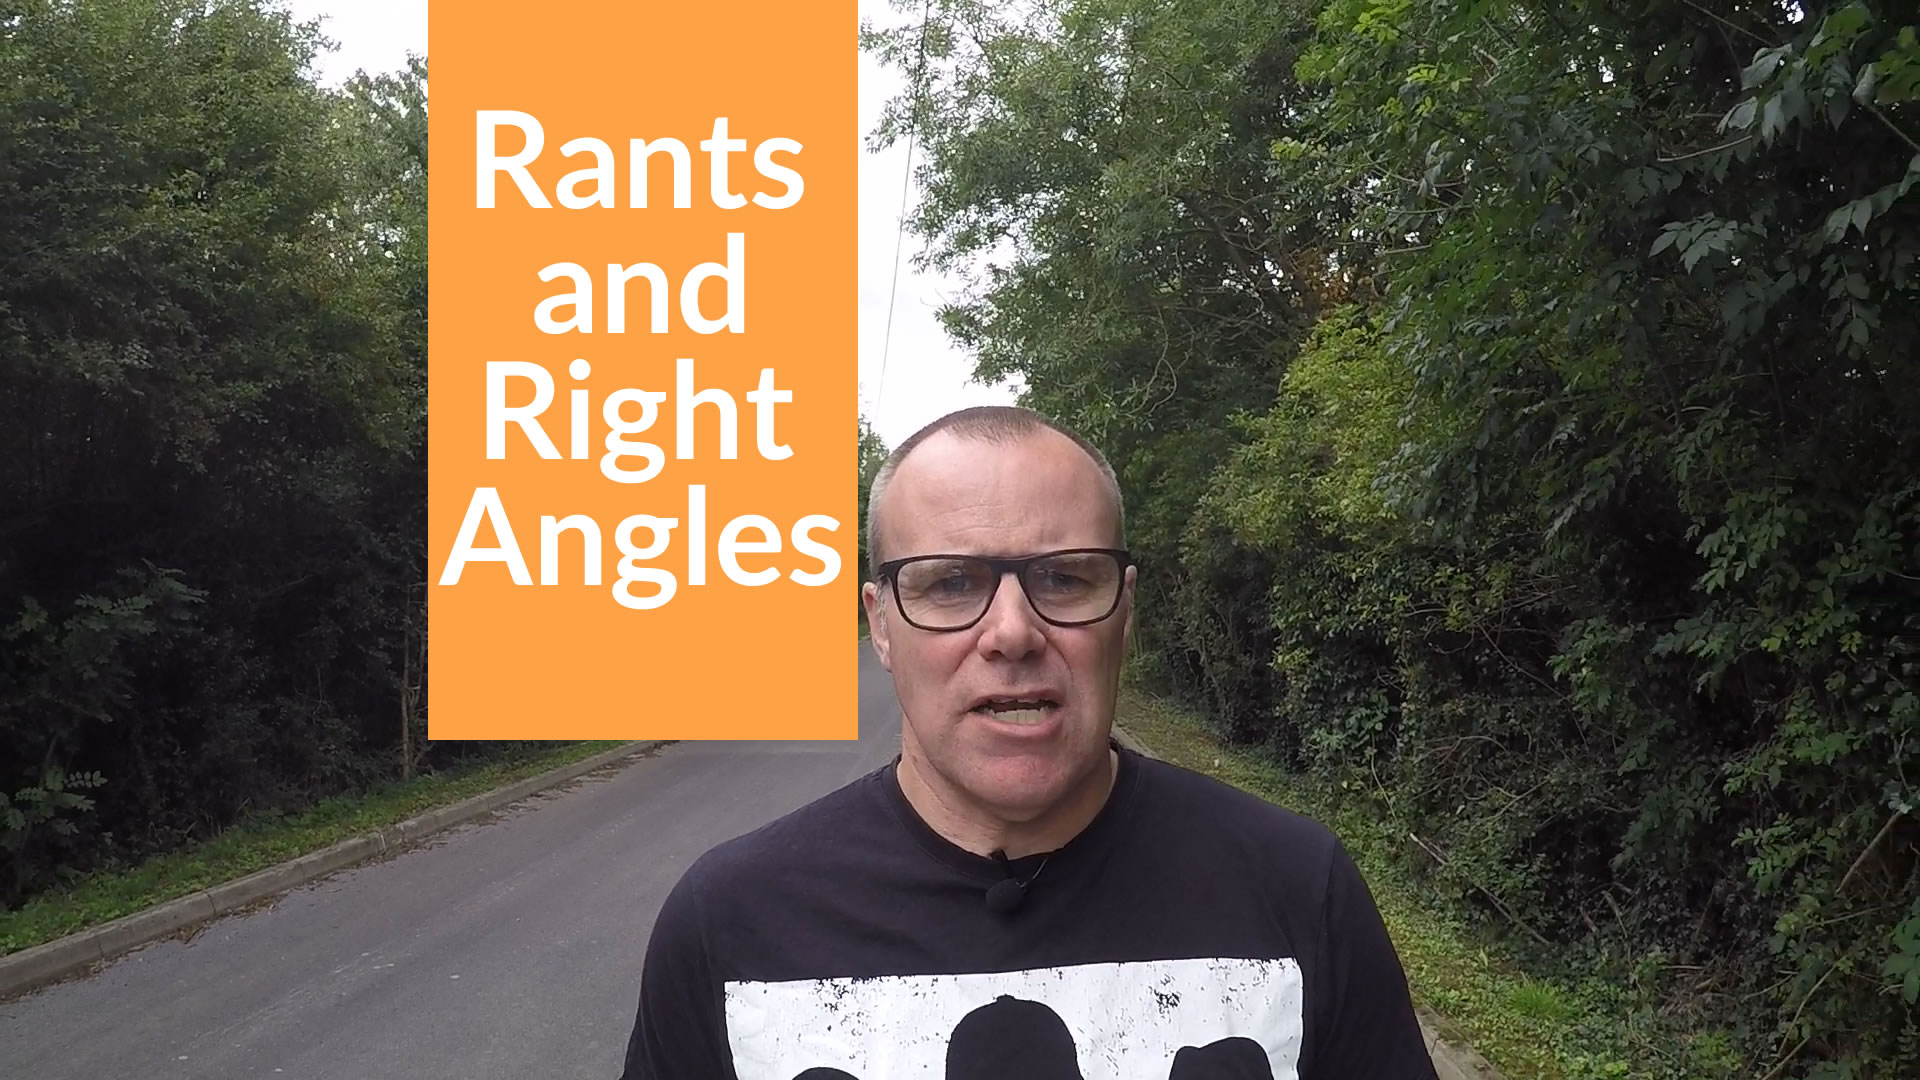 rants and right angles